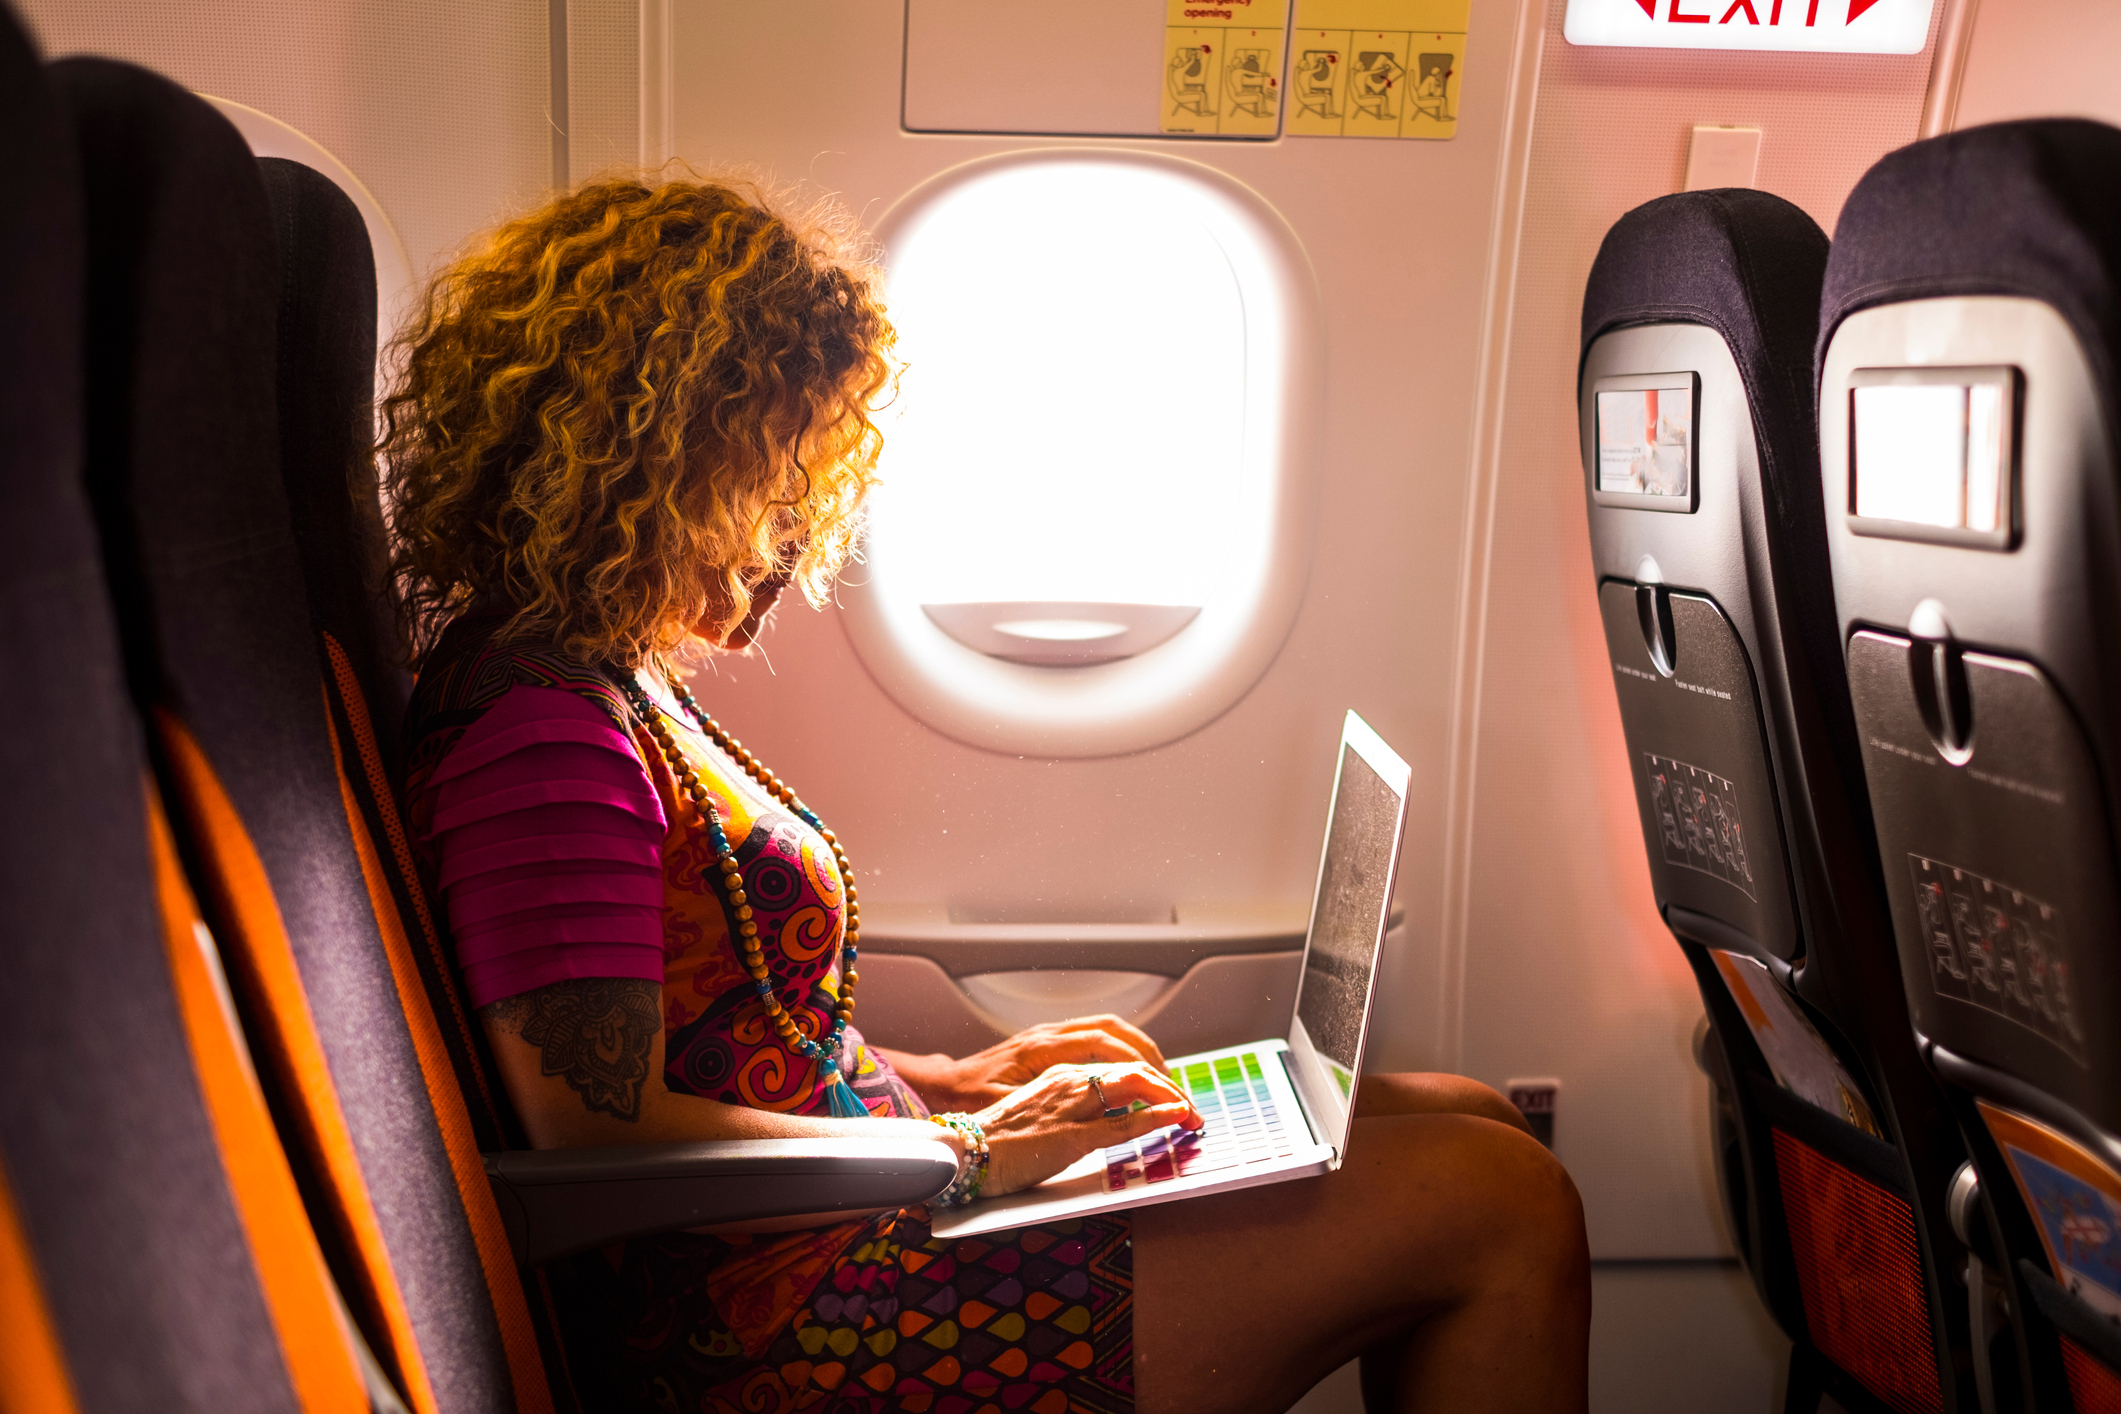 This is what you should do on a plane if you actually want to be comfortable